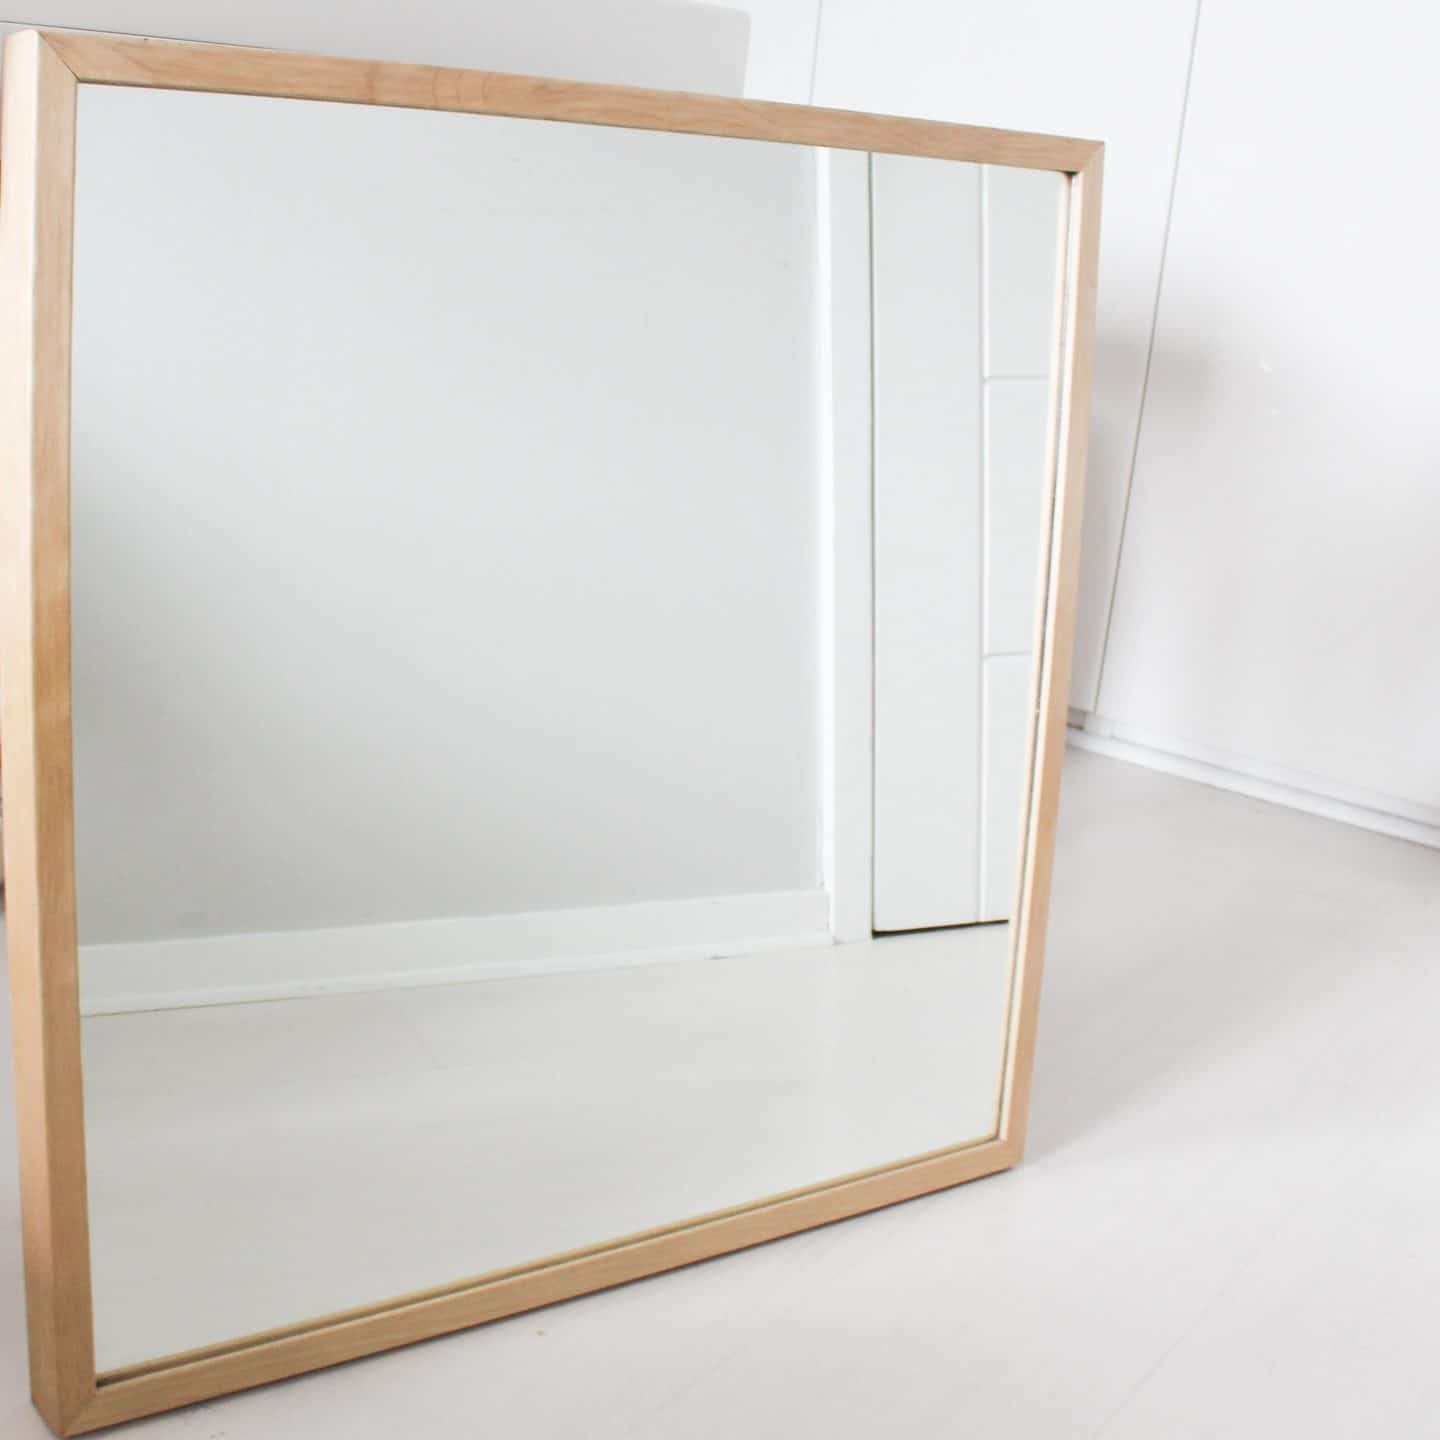 IKEA Wall Mirror